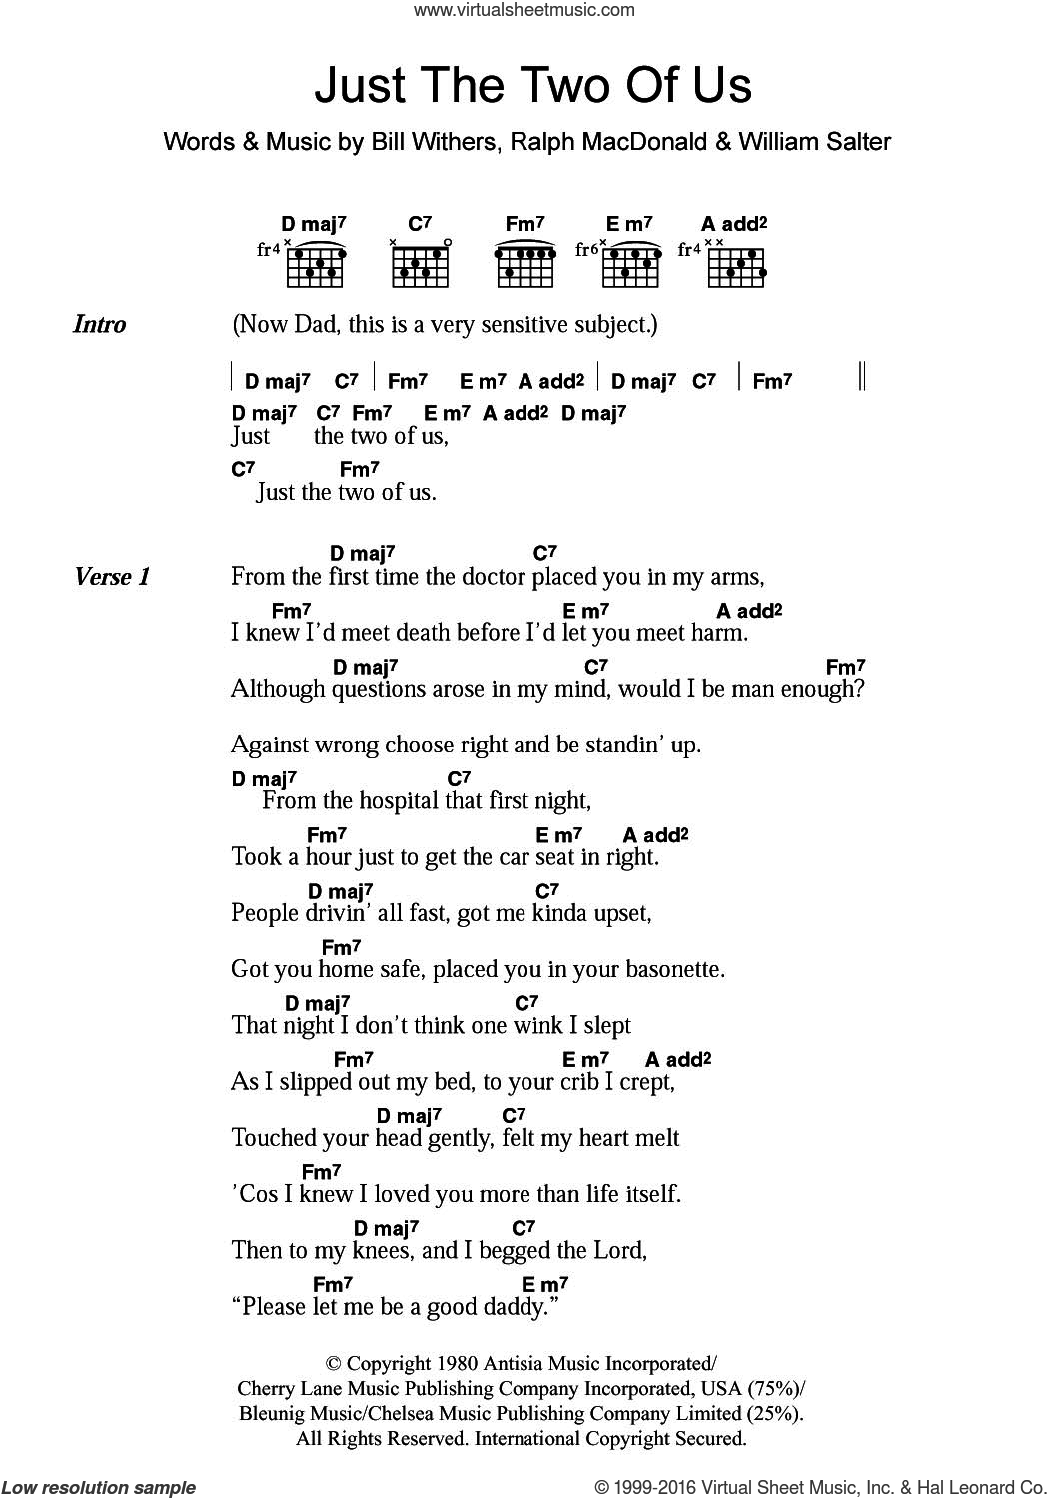 Just The Two Of Us sheet music for guitar (chords) by Bill Withers, Ralph MacDonald and William Salter, intermediate skill level